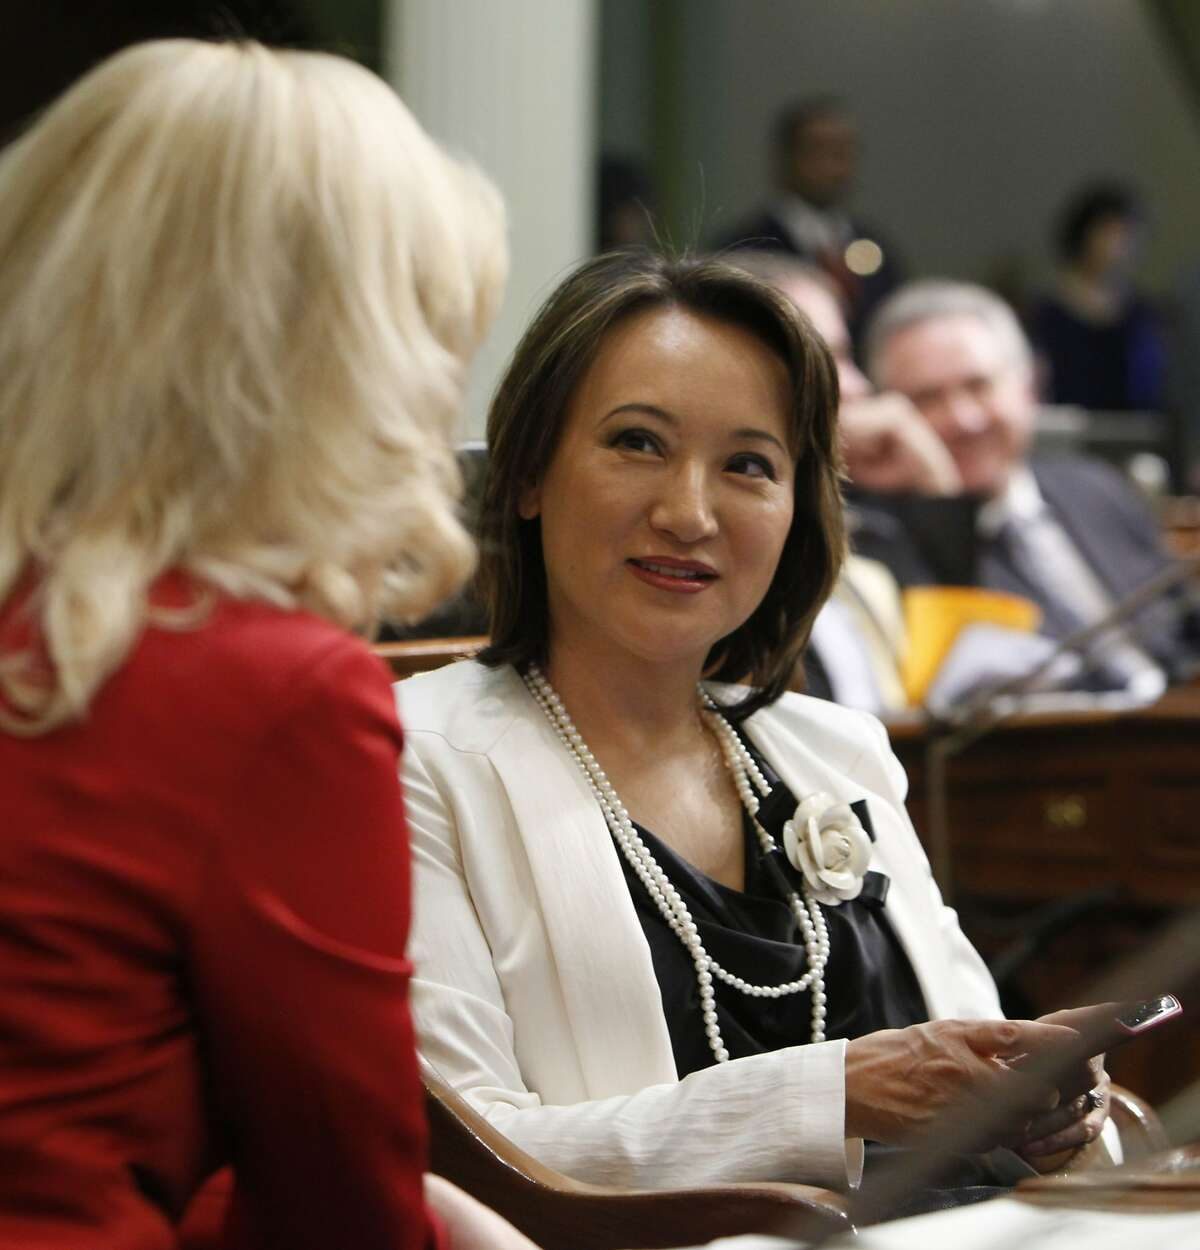 FILE - In this Jan. 4, 2012 file photo, Assemblywoman Mary Hayashi, D-Hayward, right, talks with her seat mate, Assemblywoman Cathleen Galgiani, D-Ceres, at the Capitol in Sacramento, Calif. An examination of lawmakers' voting records by the Associated Press found that Hayashi changed or added votes on legislation 291 times, more than any other member of the Assembly, while Galgiani changed her votes 139 times. The California Assembly is one of 10 state legislative bodies nationwide that allow lawmakers to change the official records for how they acted on specific pieces of legislation. (AP Photo/Rich Pedroncelli, File)